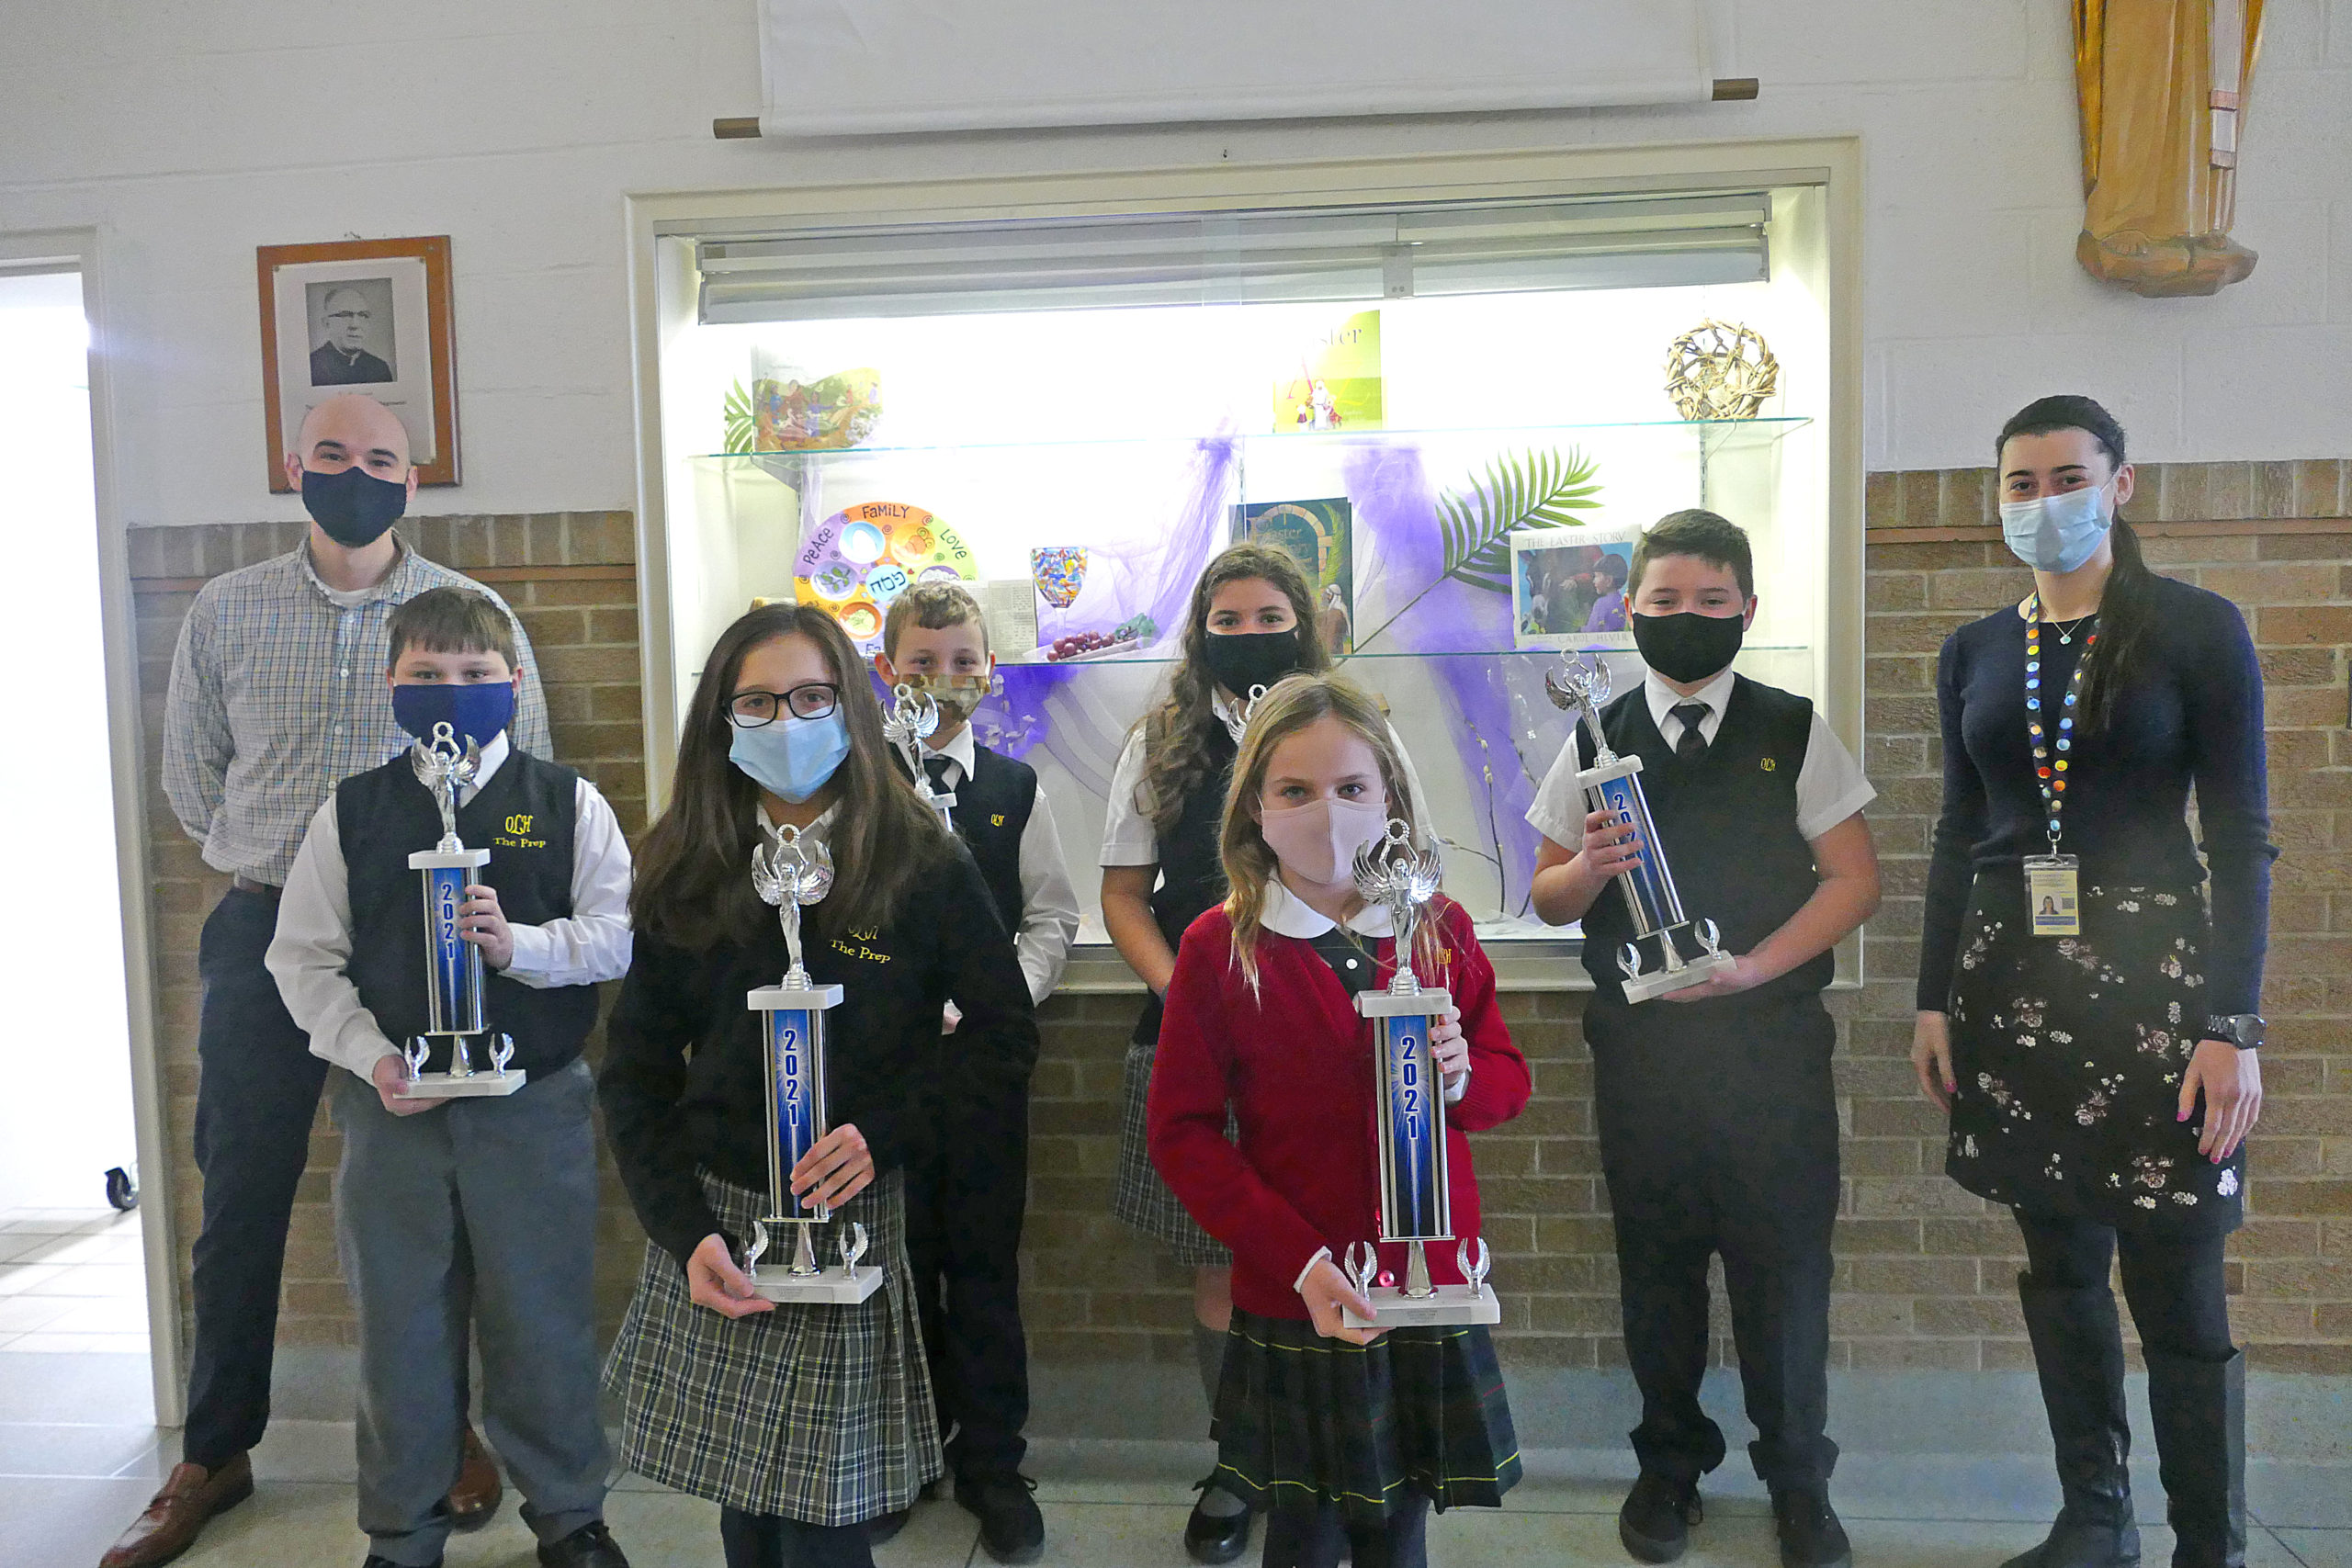 The grade level winners of the Science Shark Tank at OLH are, pictured with their teachers, Logan Robinson and Amanda Burriesci, Sofia Patrone, Bianca Alvarado, Conner McVeigh, Steven Kellis, Joseph Martin and Addison Cinelli.  COURTESY OUR LADY OF THE HAMPTONS